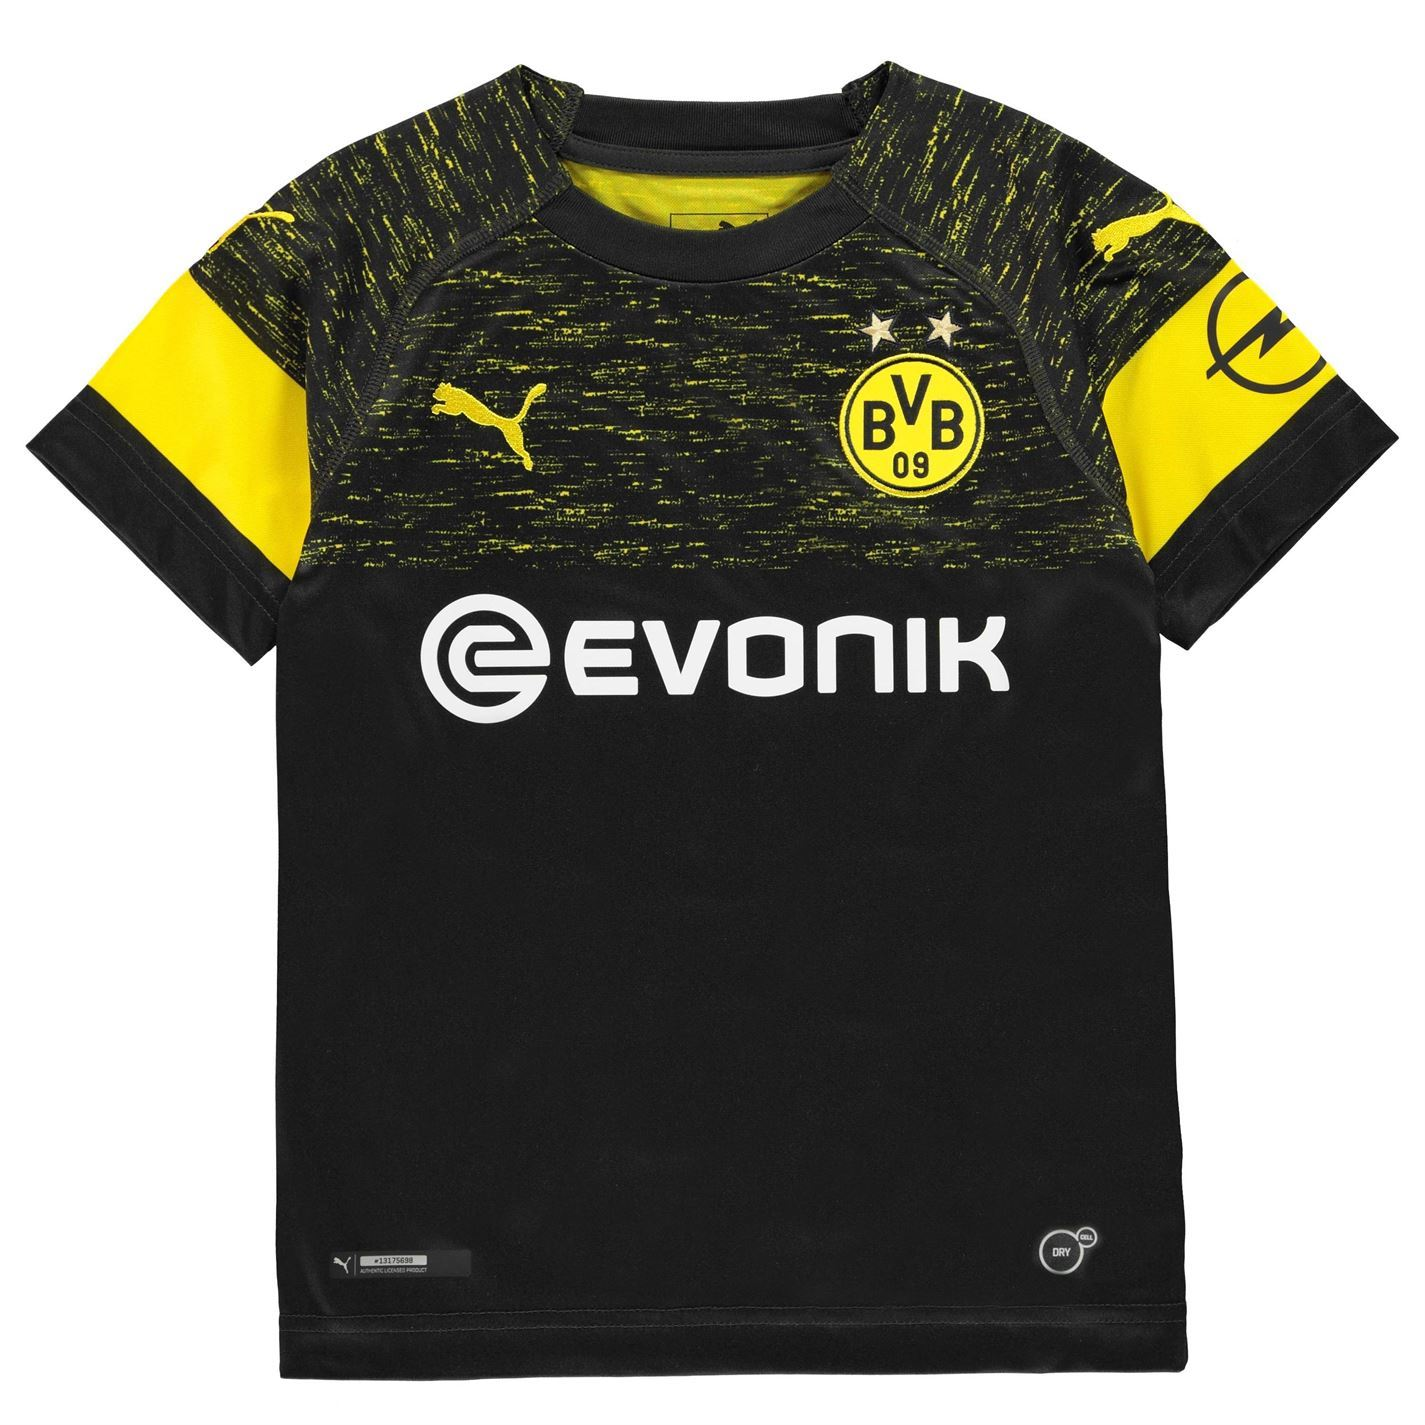 d2055dc4c41 ... Puma Borussia Dortmund Away Jersey 2018 2019 Juniors Black Football  Soccer Shirt ...